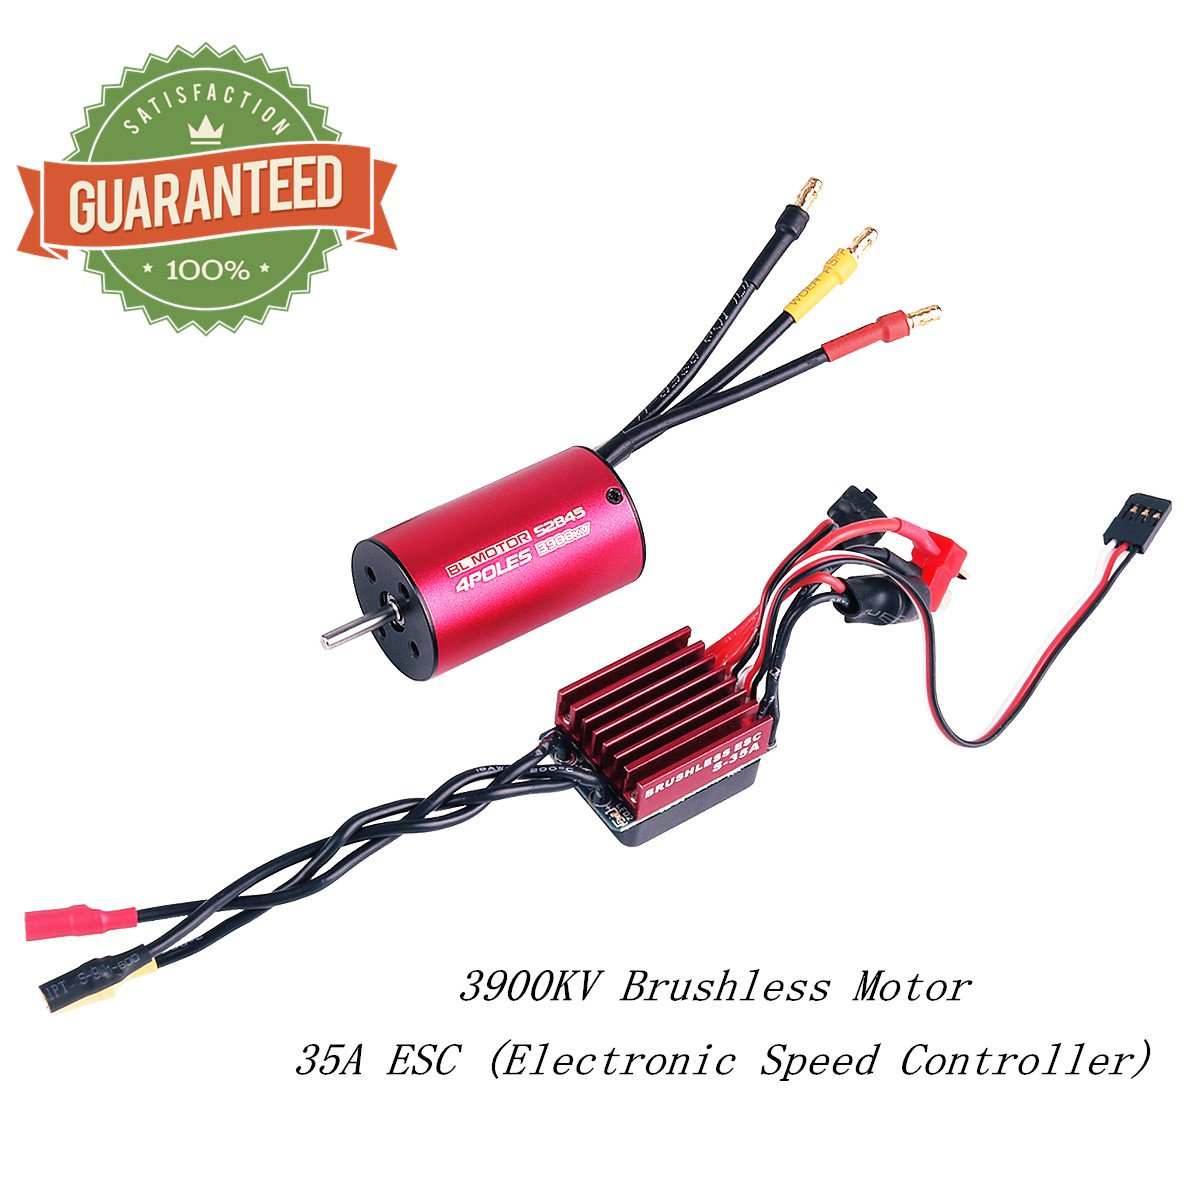 3670 2150KV 5mm Sensorless Brushless Motor with 80A Splashproof ESC (Electric Speed Controller) for 1/8 RC Car Truck Running Off-Road Vehicle by Crazepony-UK